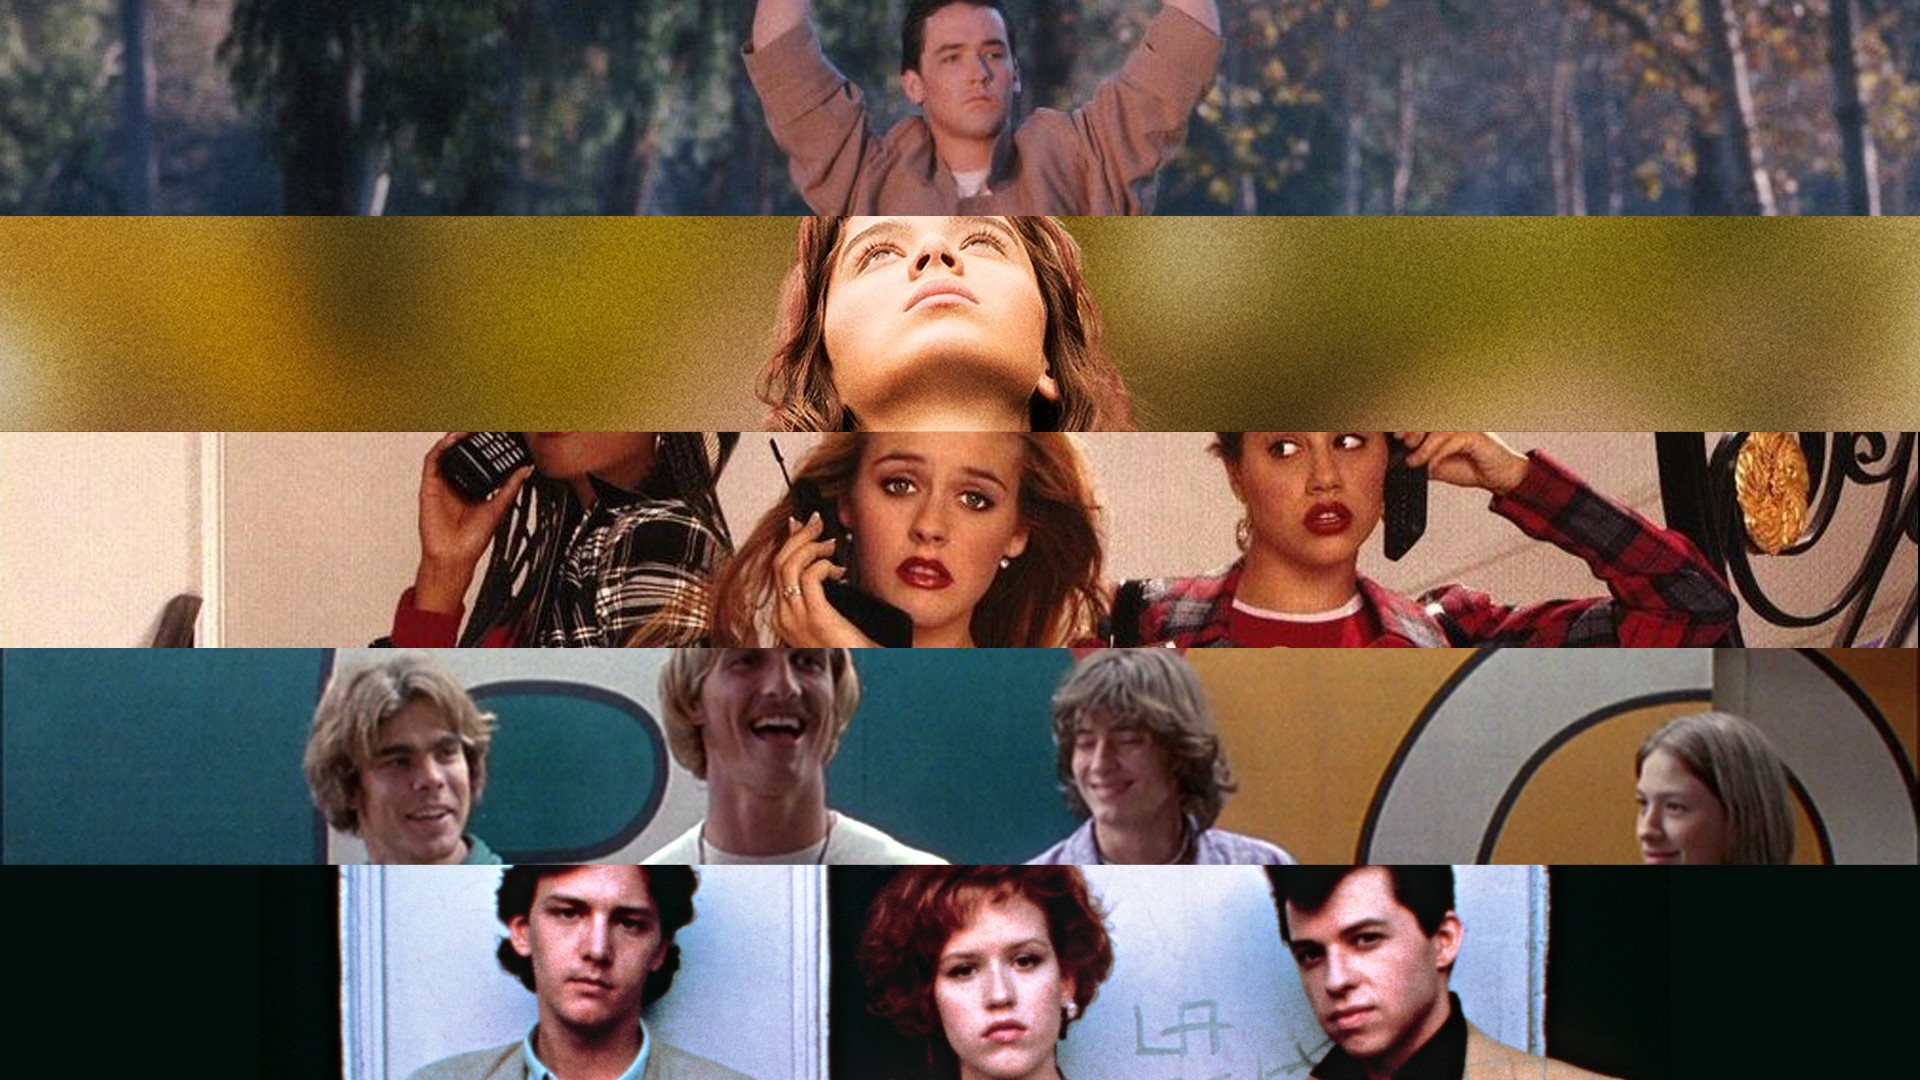 Five Movie Soundtracks that Will Change Your Life as a Student